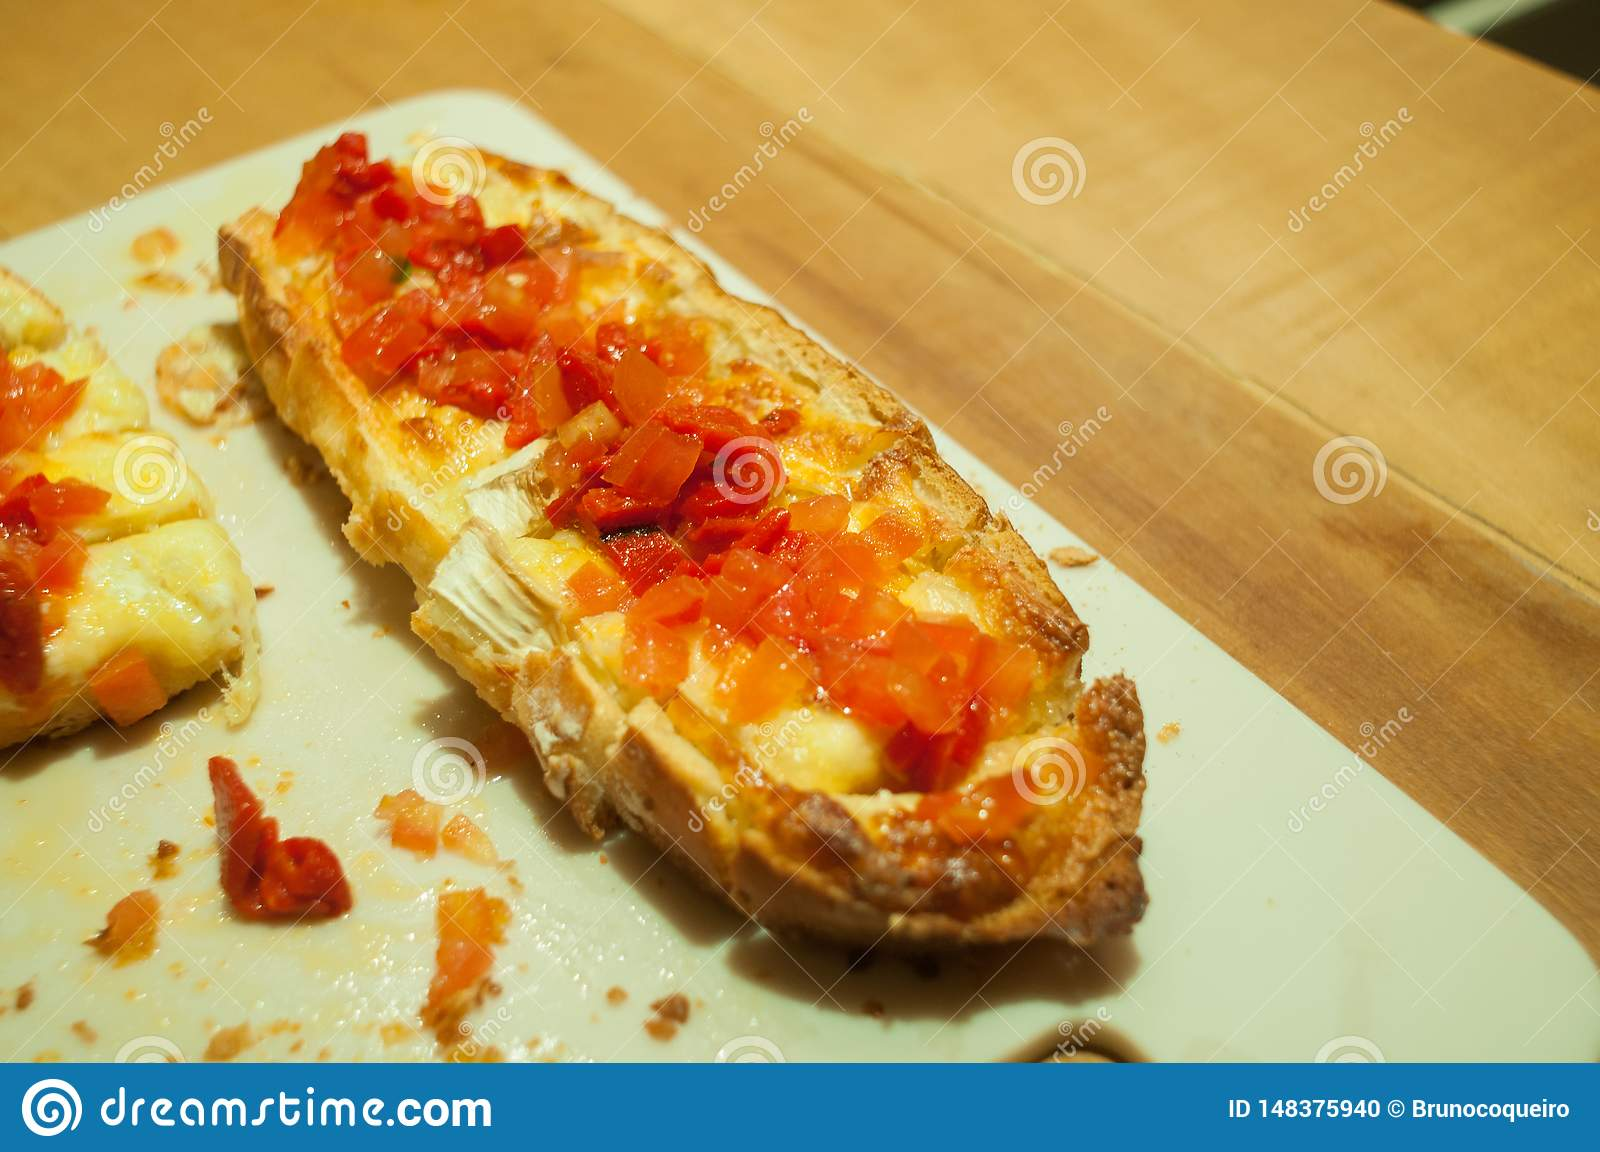 Double Brusqueta With Italian Tomatoes And Cheese On The